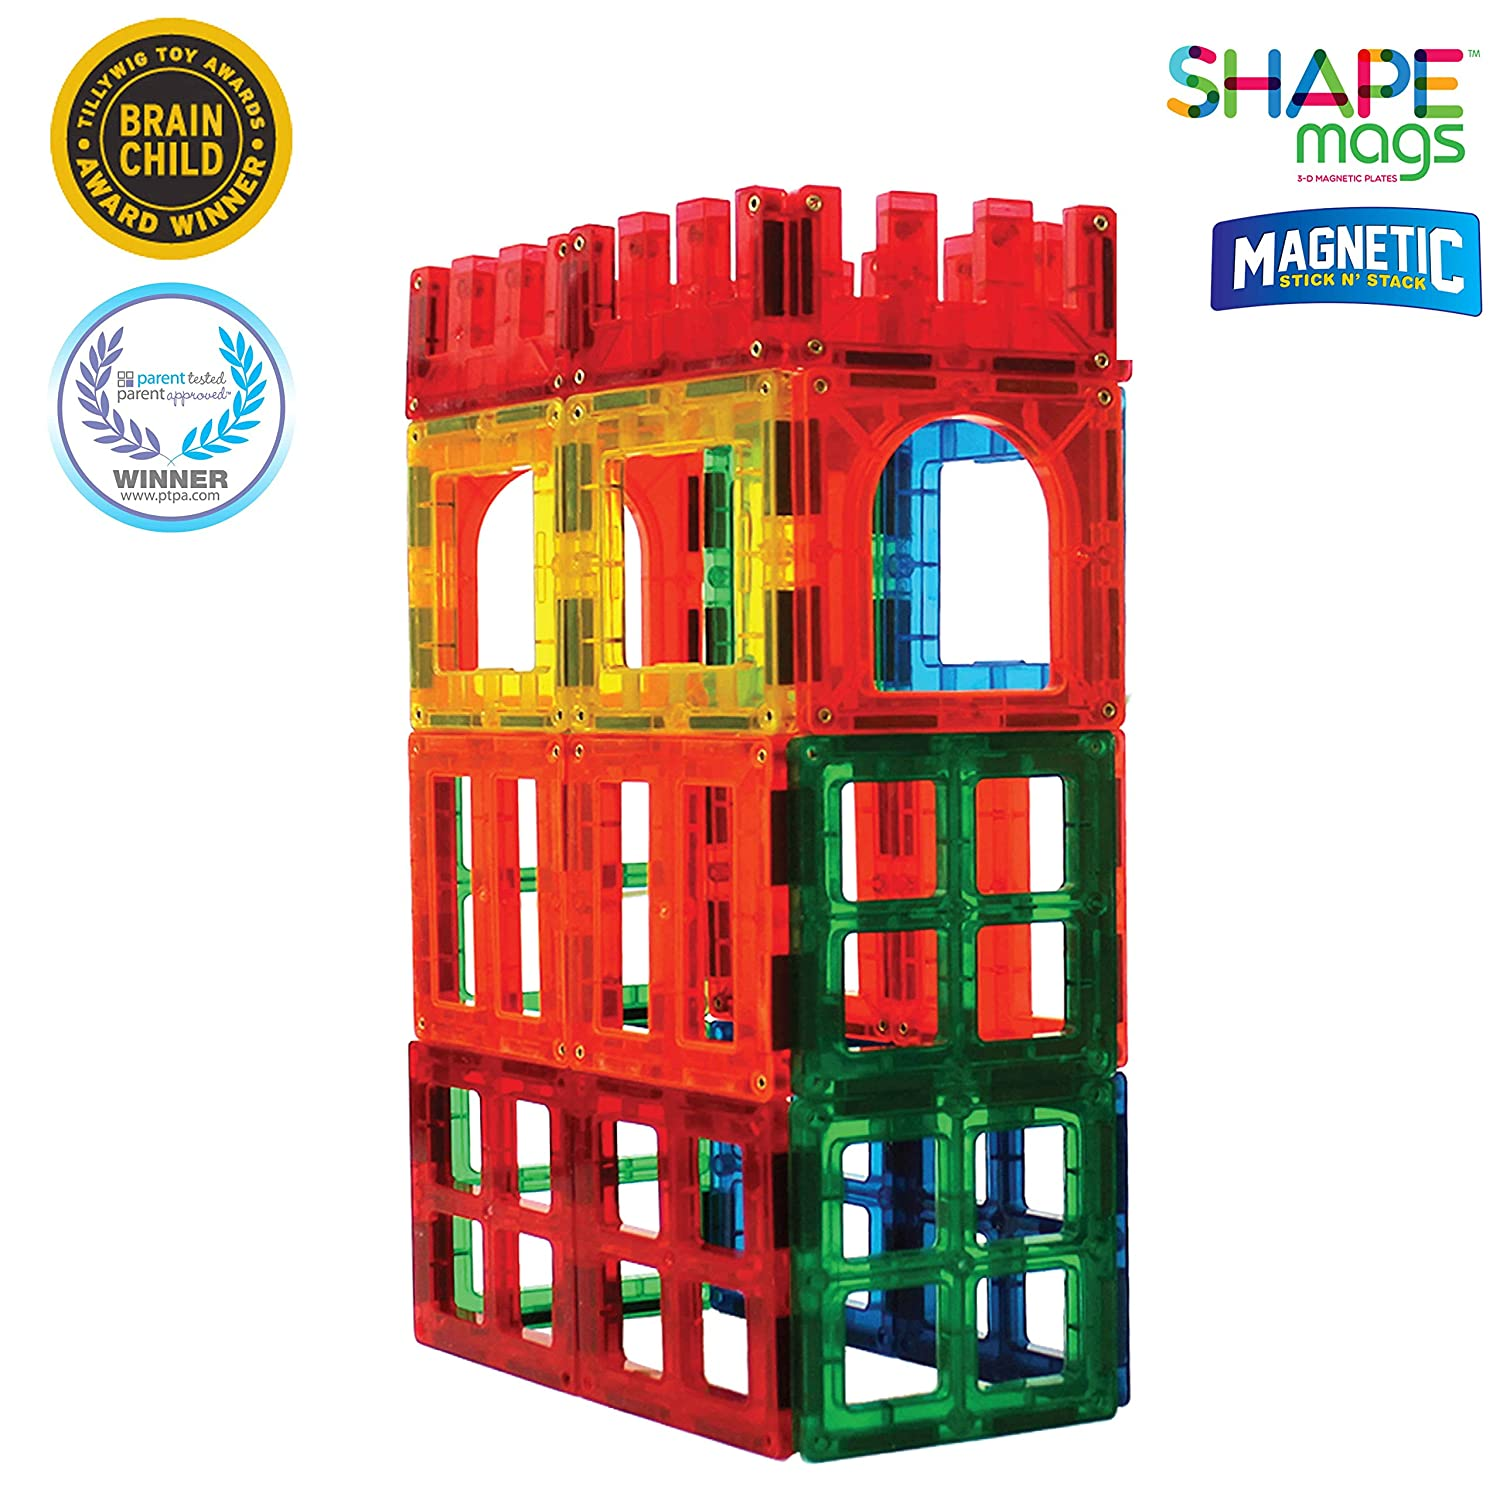 Award Winning Magnetic Stick N Stack 24 Piece Window, Fences and Doors Set. Made with Power+Magnets Review